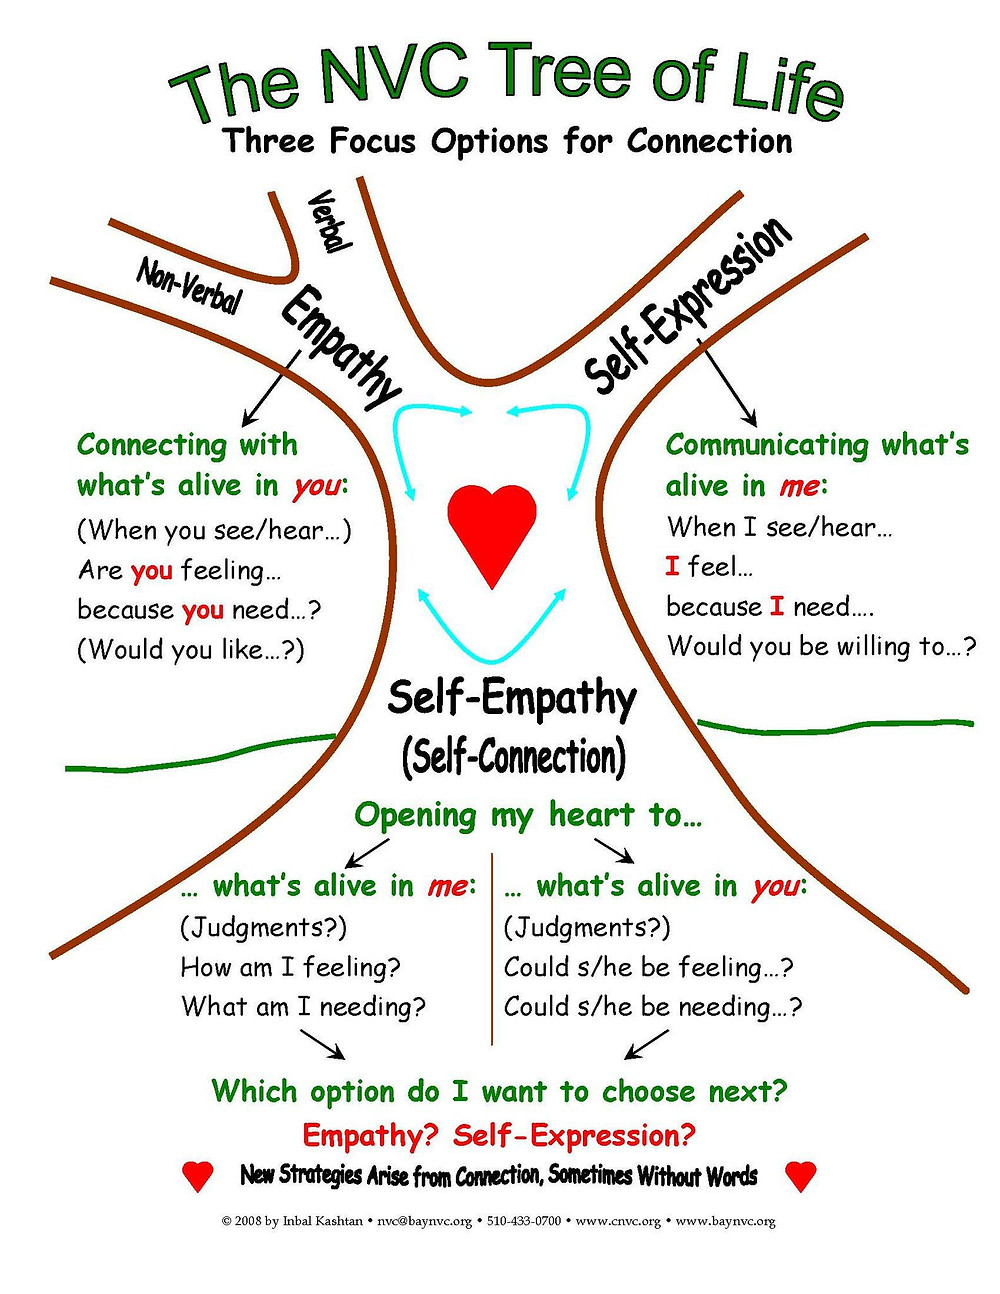 Non violent communication tree of life